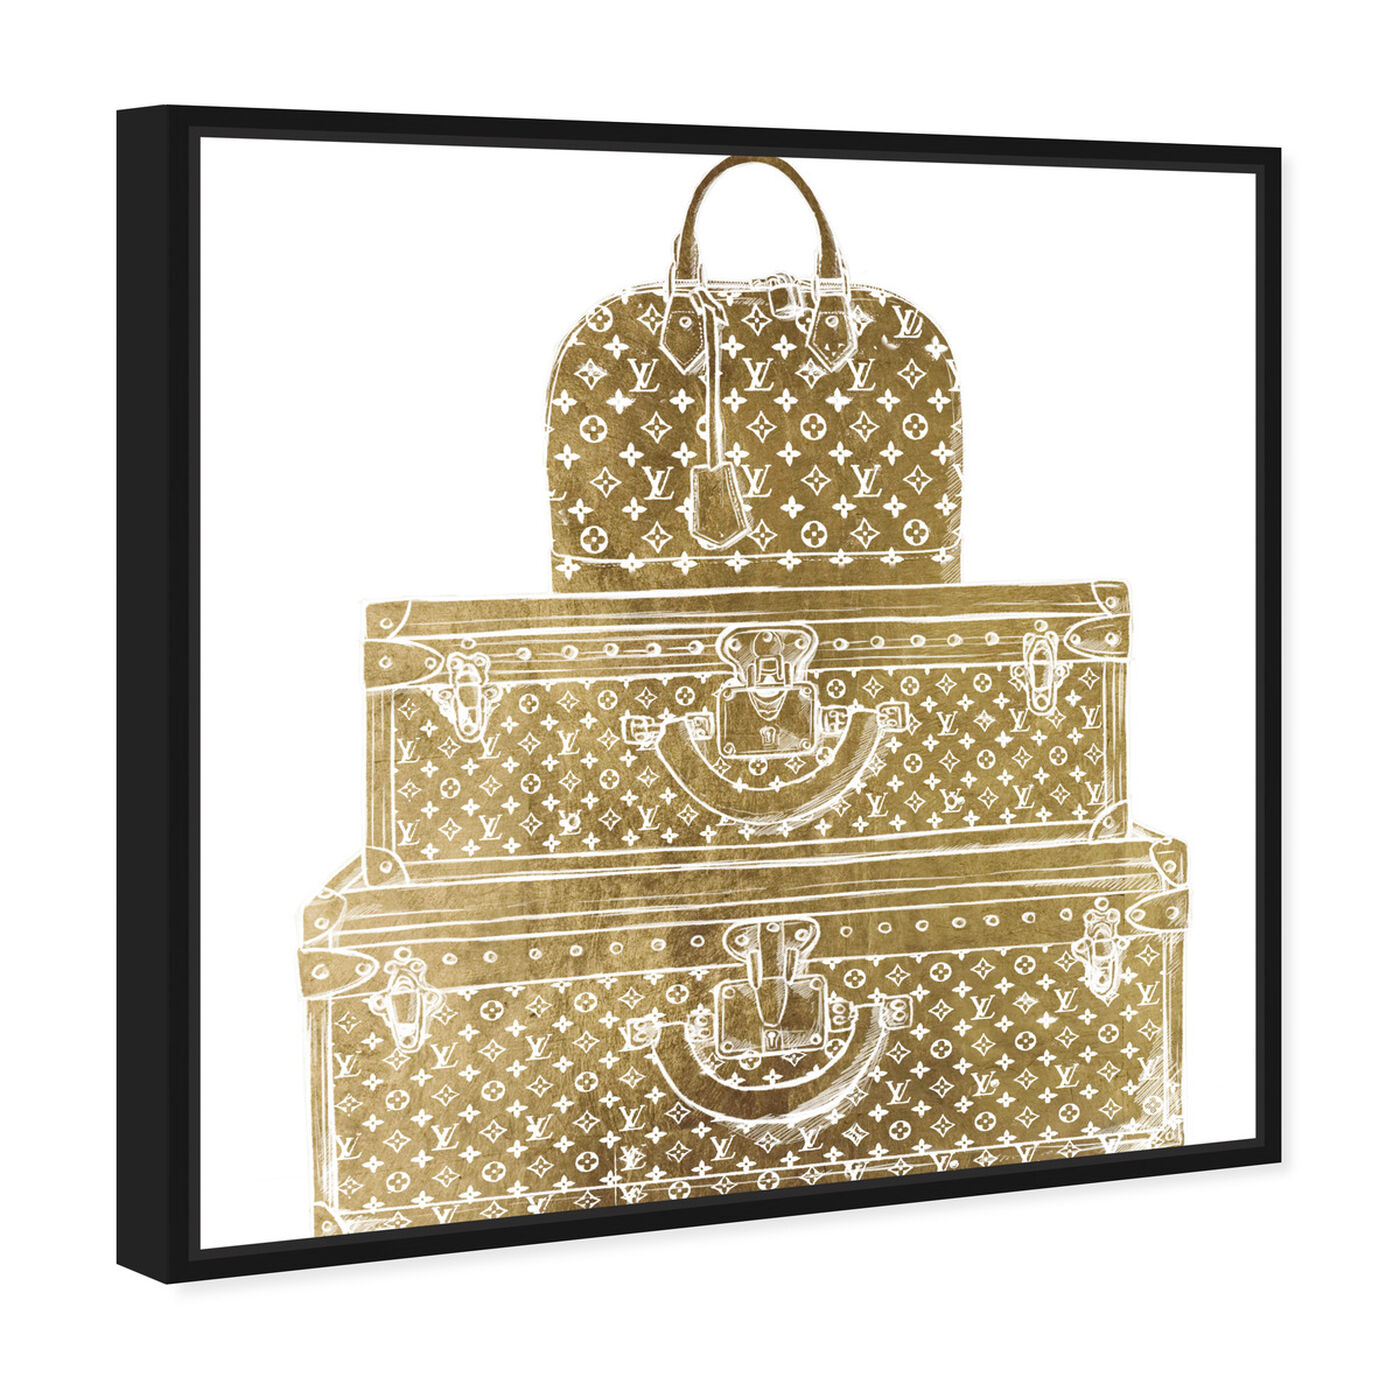 Angled view of Royal Bag and Luggage Gold diecut featuring fashion and glam and travel essentials art.